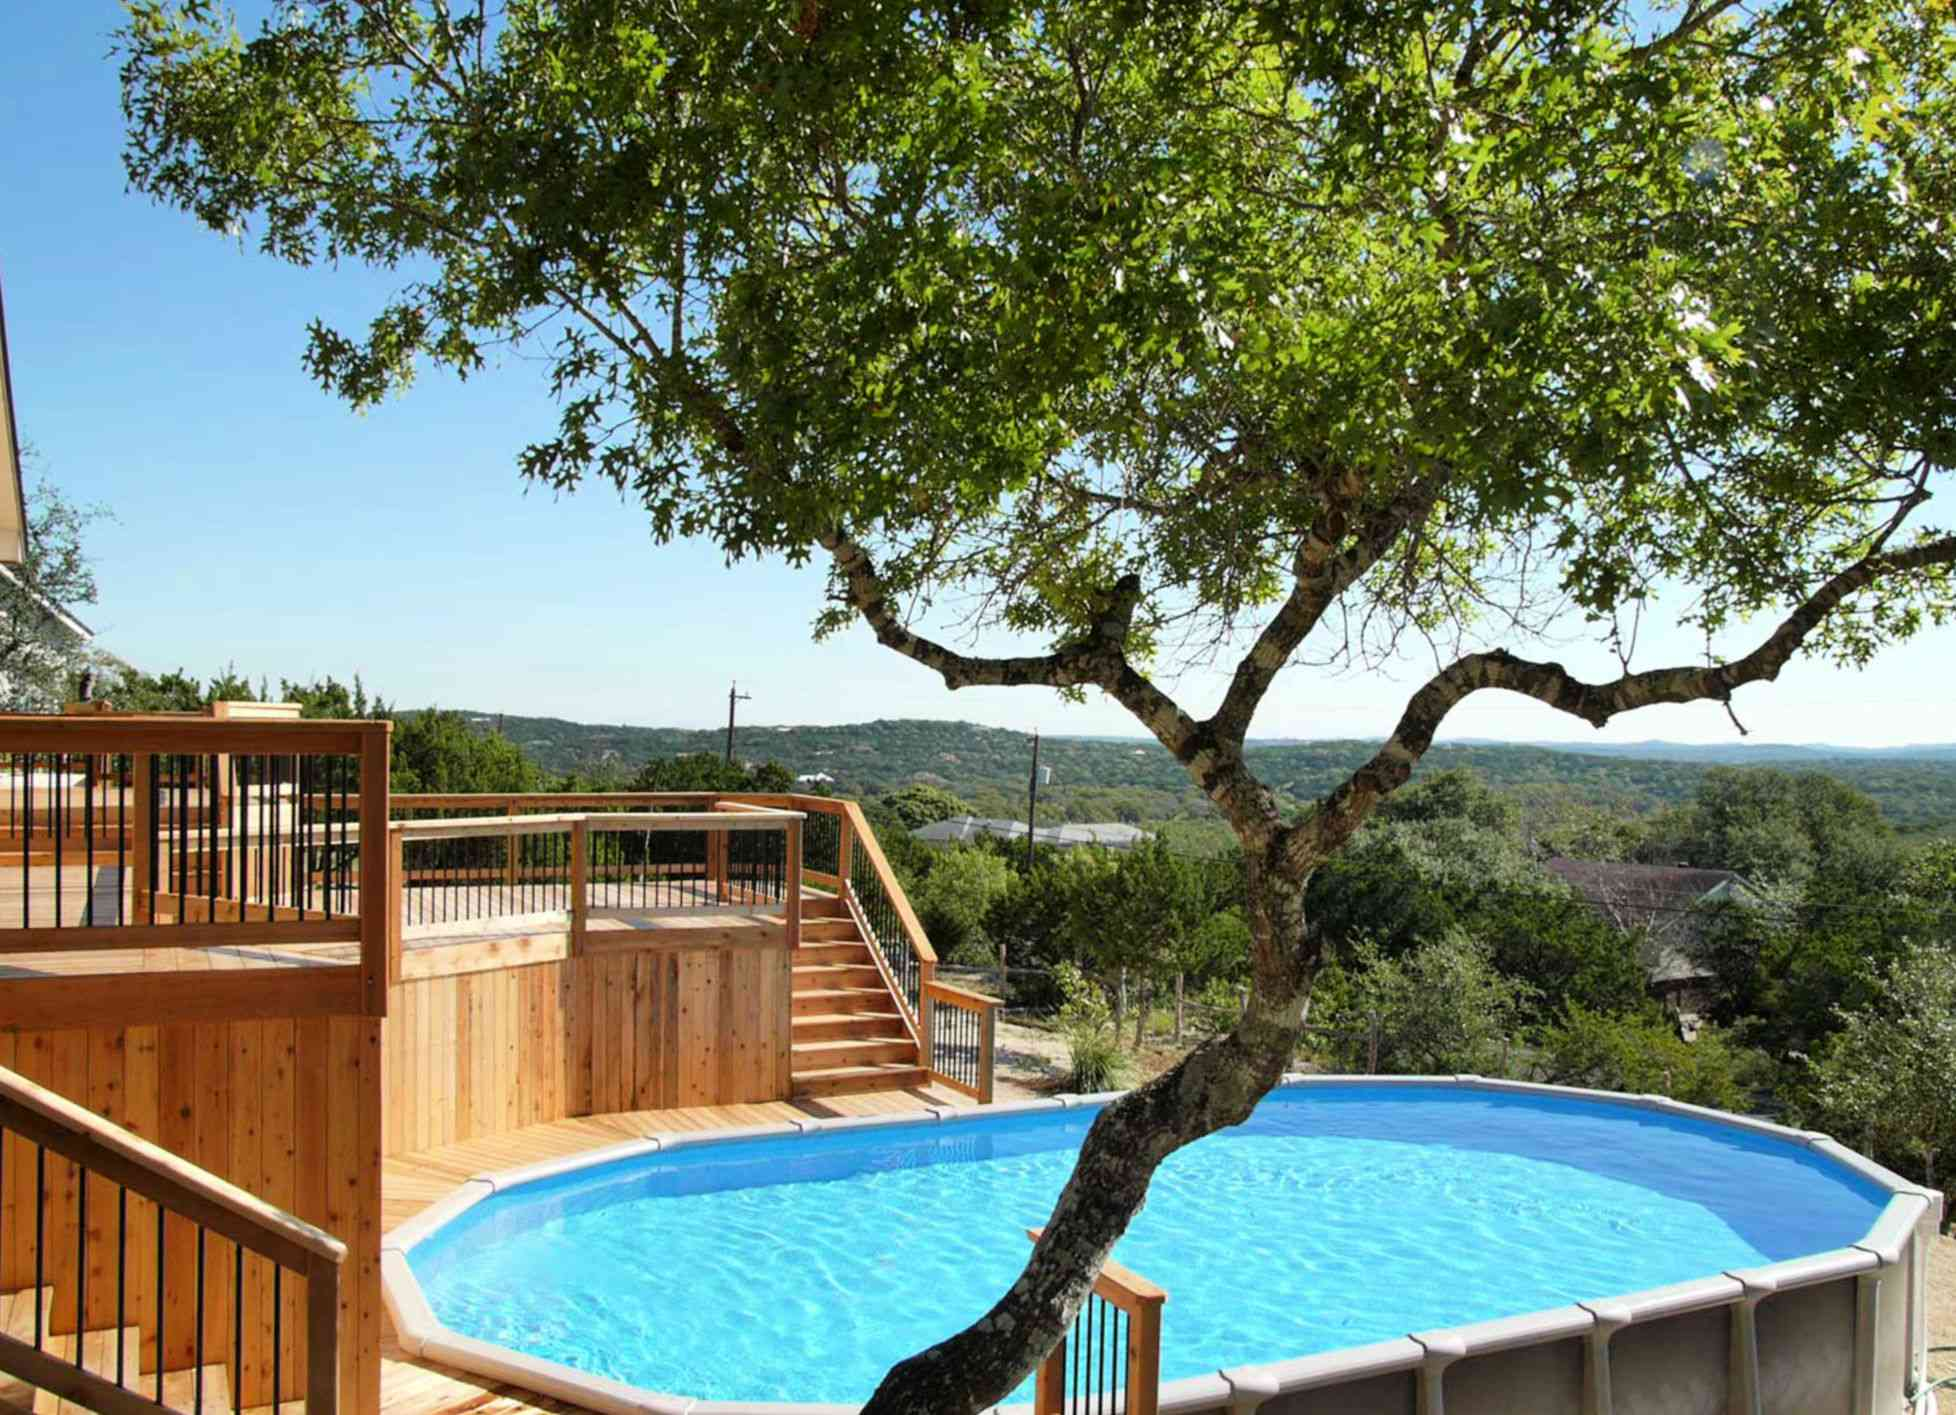 above-ground pool with decking